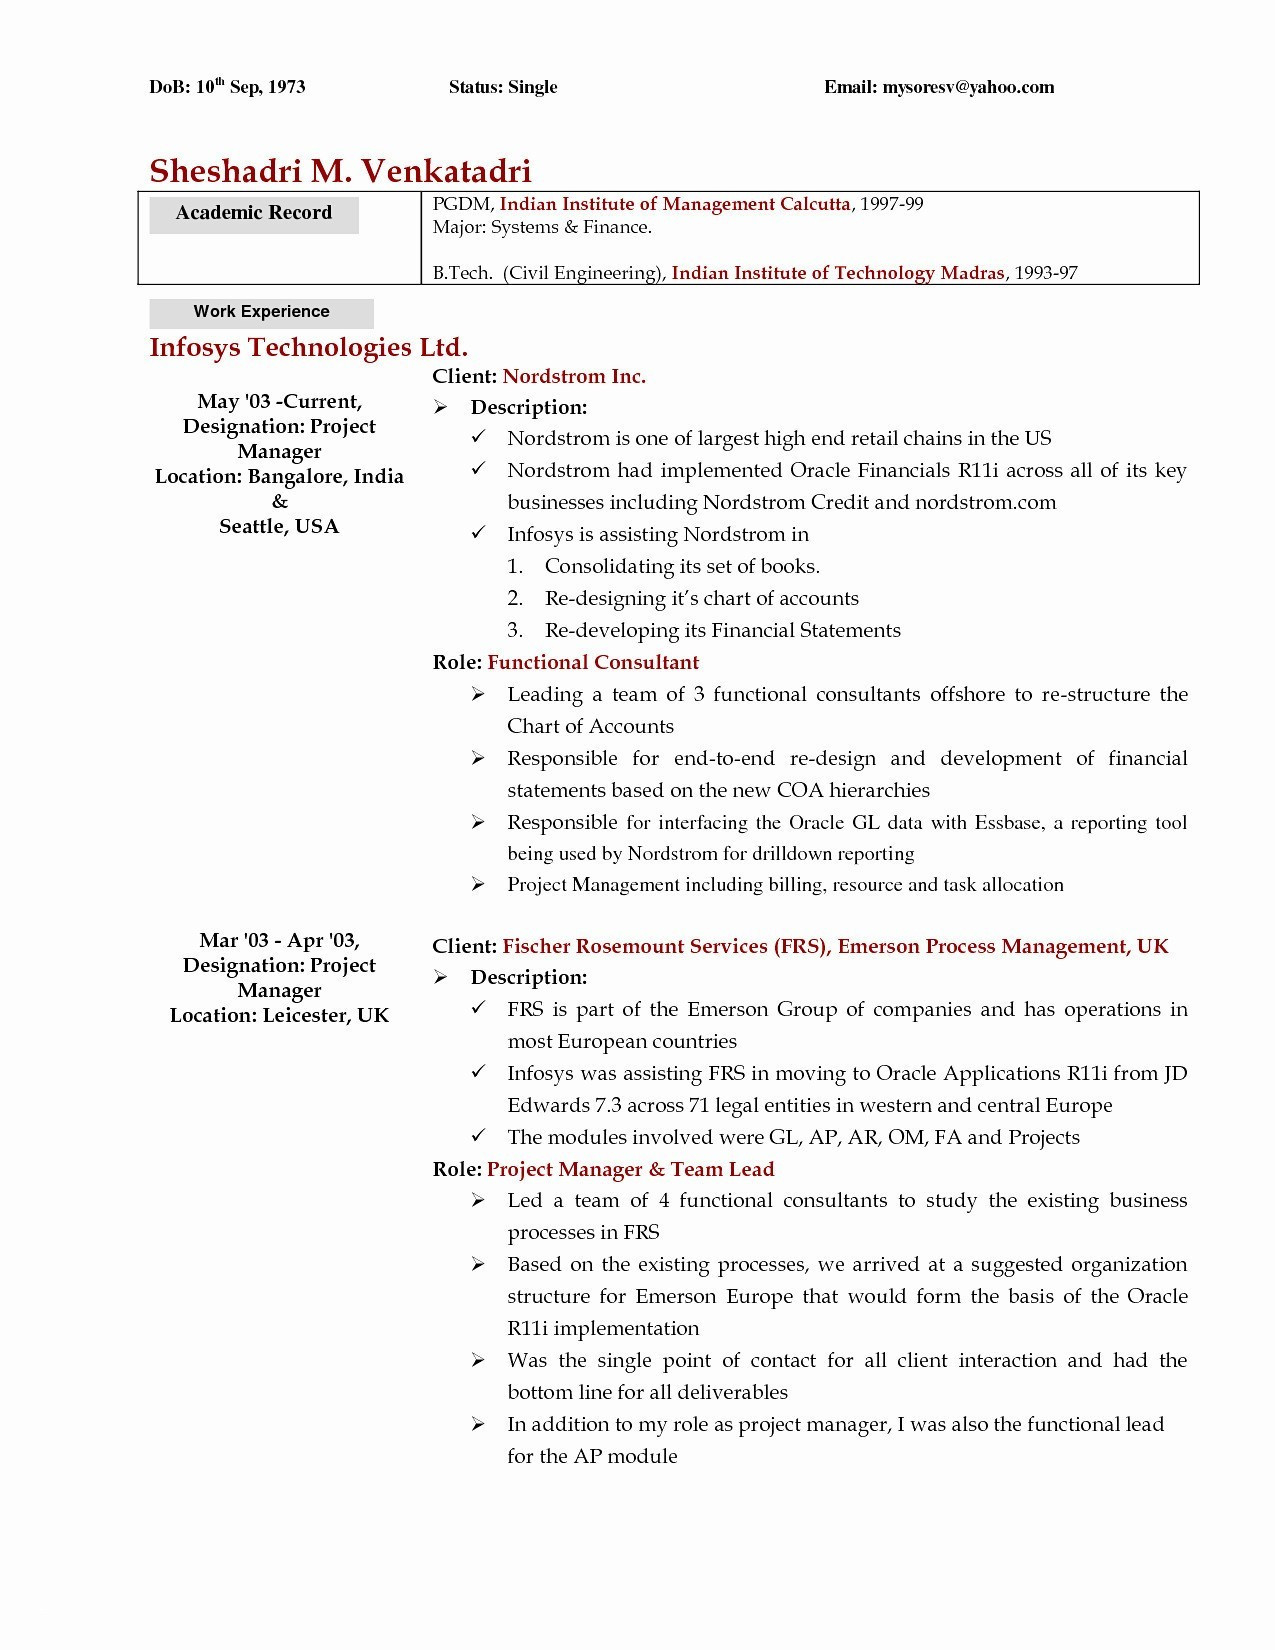 Housekeeping Resume Template Free - Housekeeping Resume Templates Reference 19 Awesome Housekeeping